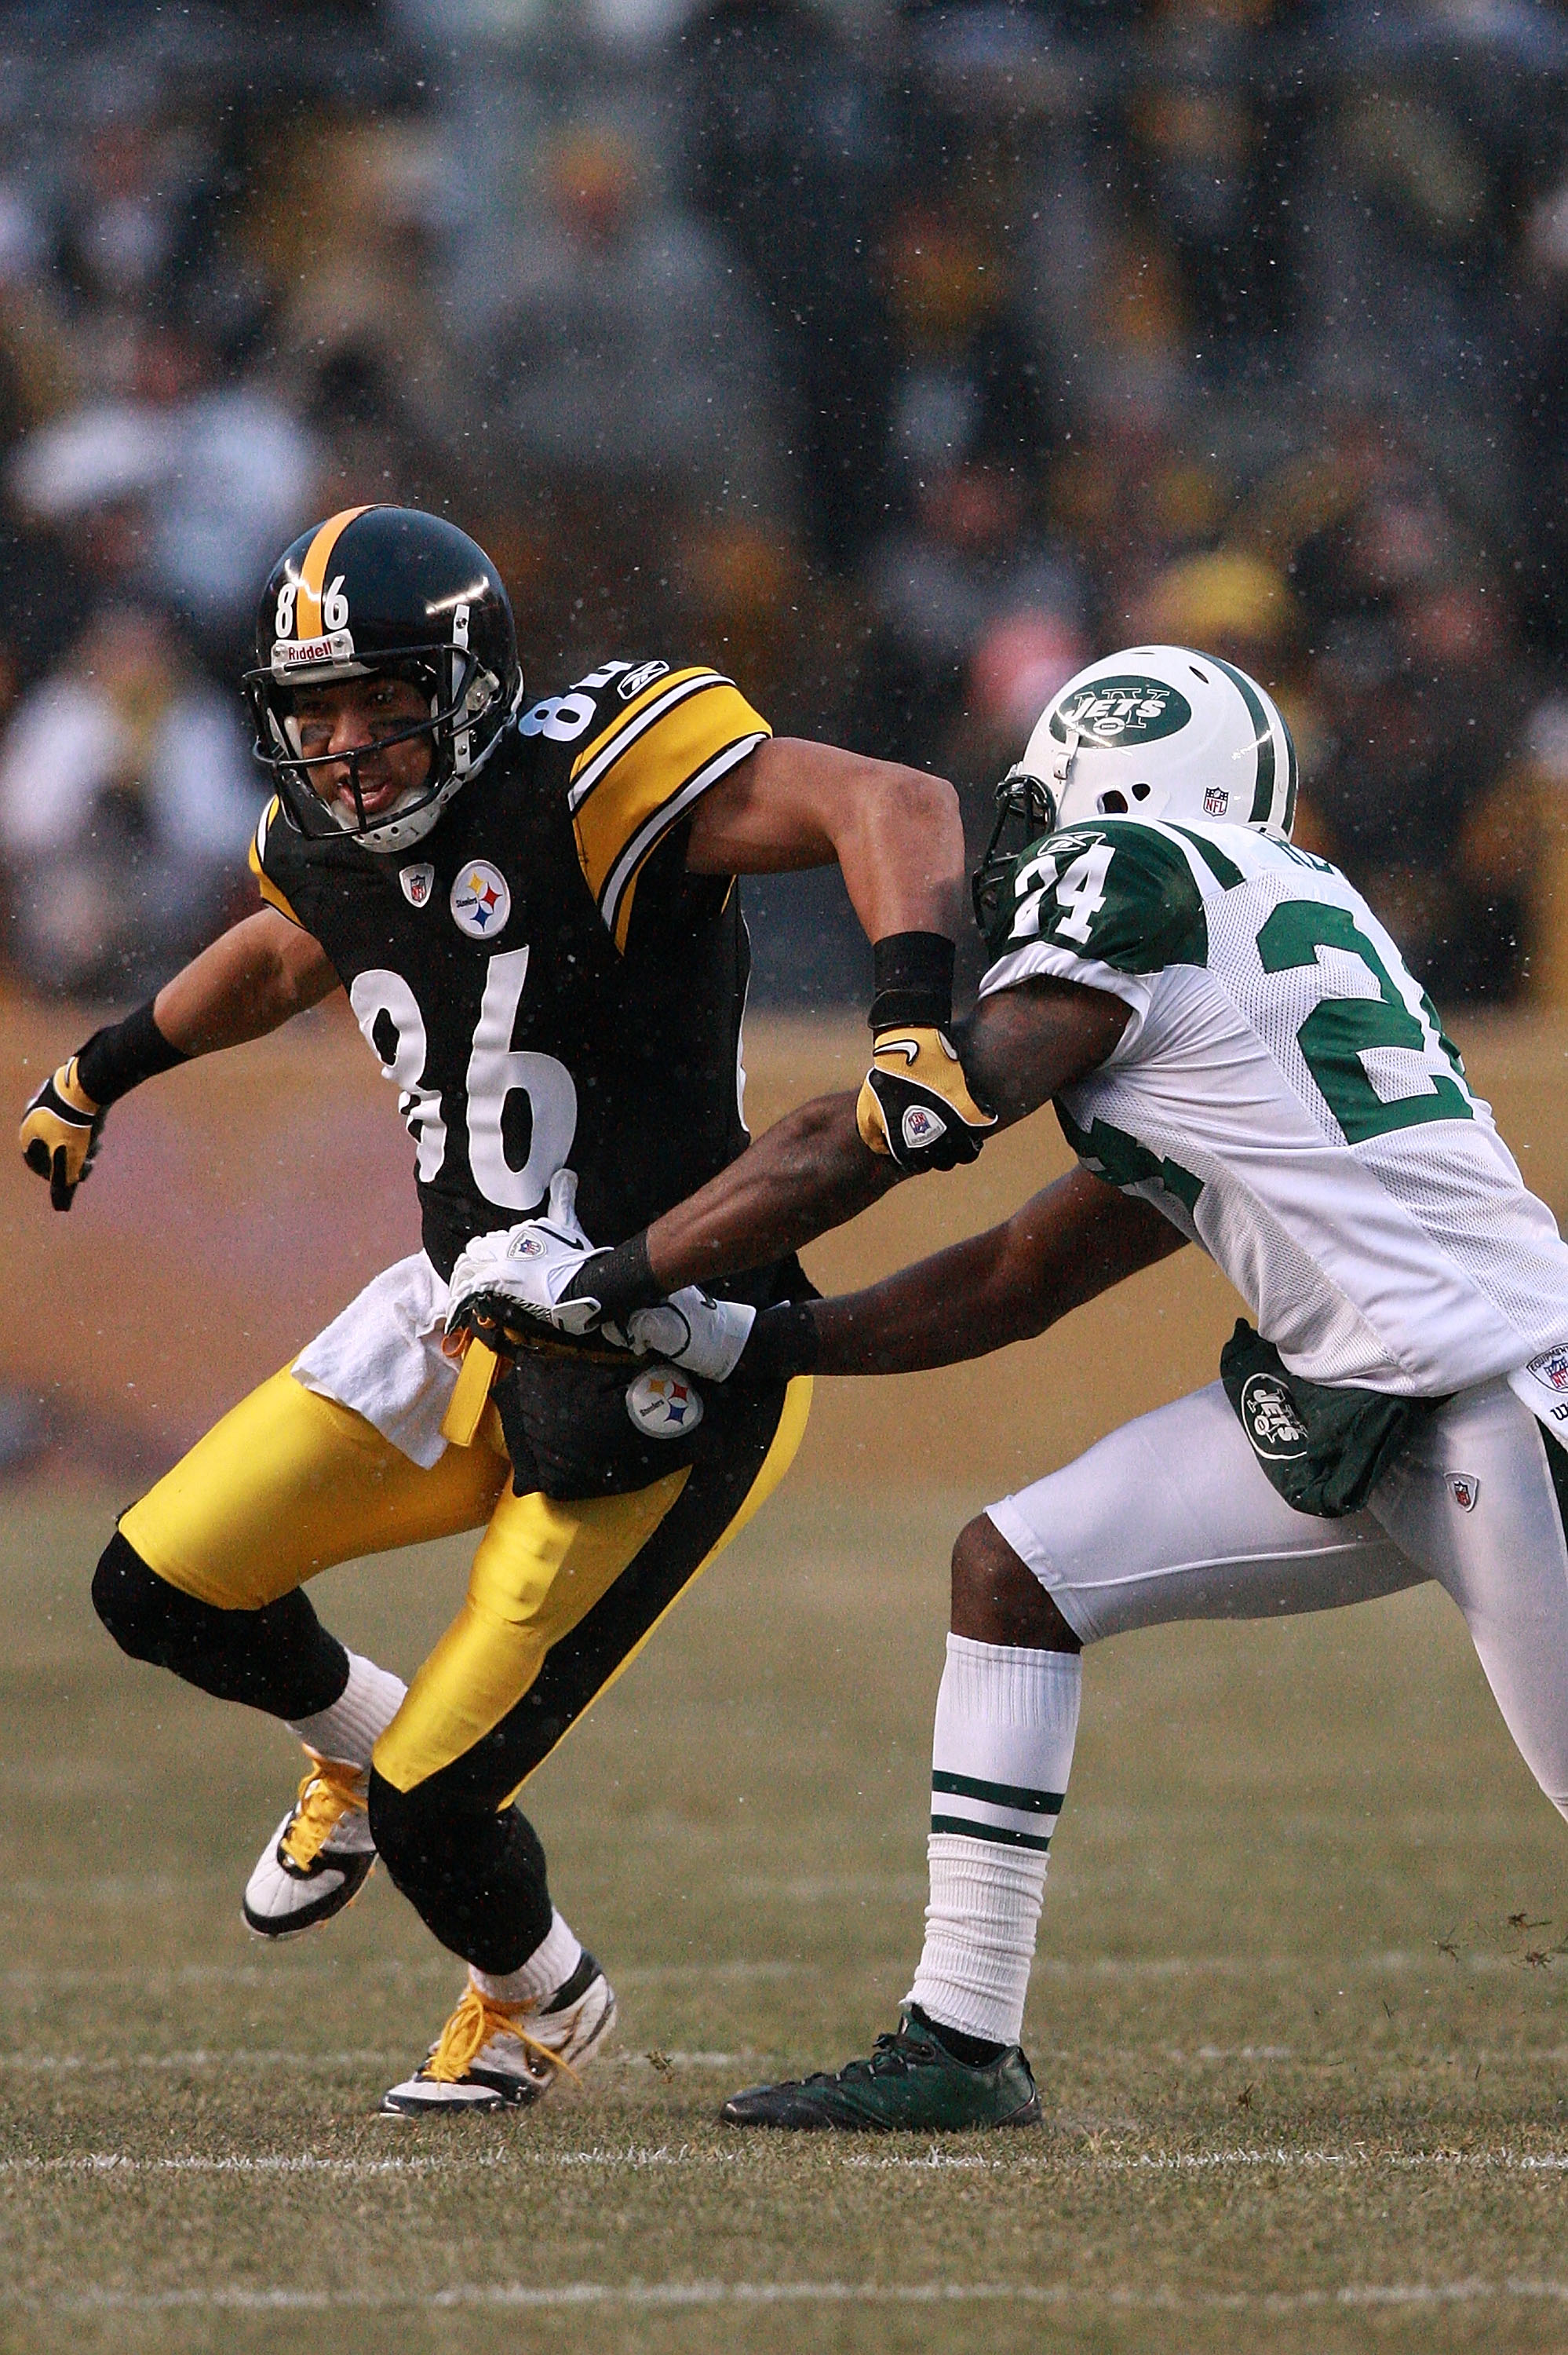 PITTSBURGH - DECEMBER 19:  Darrelle Revis #24 of the New York Jets defends Hines Ward #86 of the Pittsburgh Steelers during their game at Heinz Field on December 19, 2010 in Pittsburgh, Pennsylvania.  (Photo by Karl Walter/Getty Images)